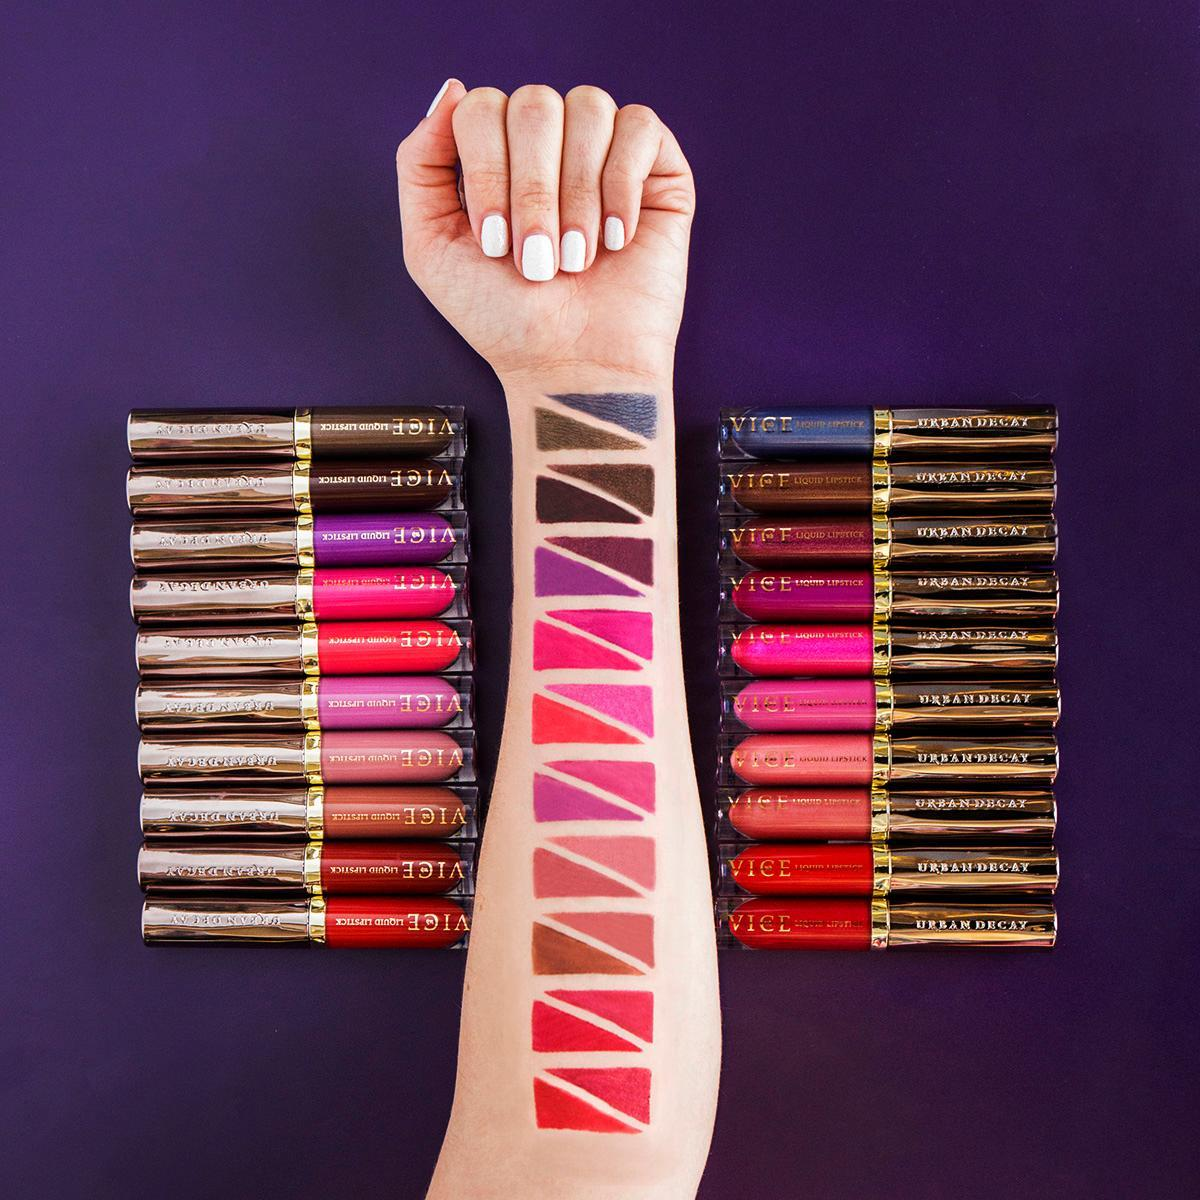 S.O.S! Feeling indecisive.  http:// bit.ly/2mDv7kh  &nbsp;   #LipstickIsMyVice #UrbanDecay<br>http://pic.twitter.com/hIPyLI83Y8